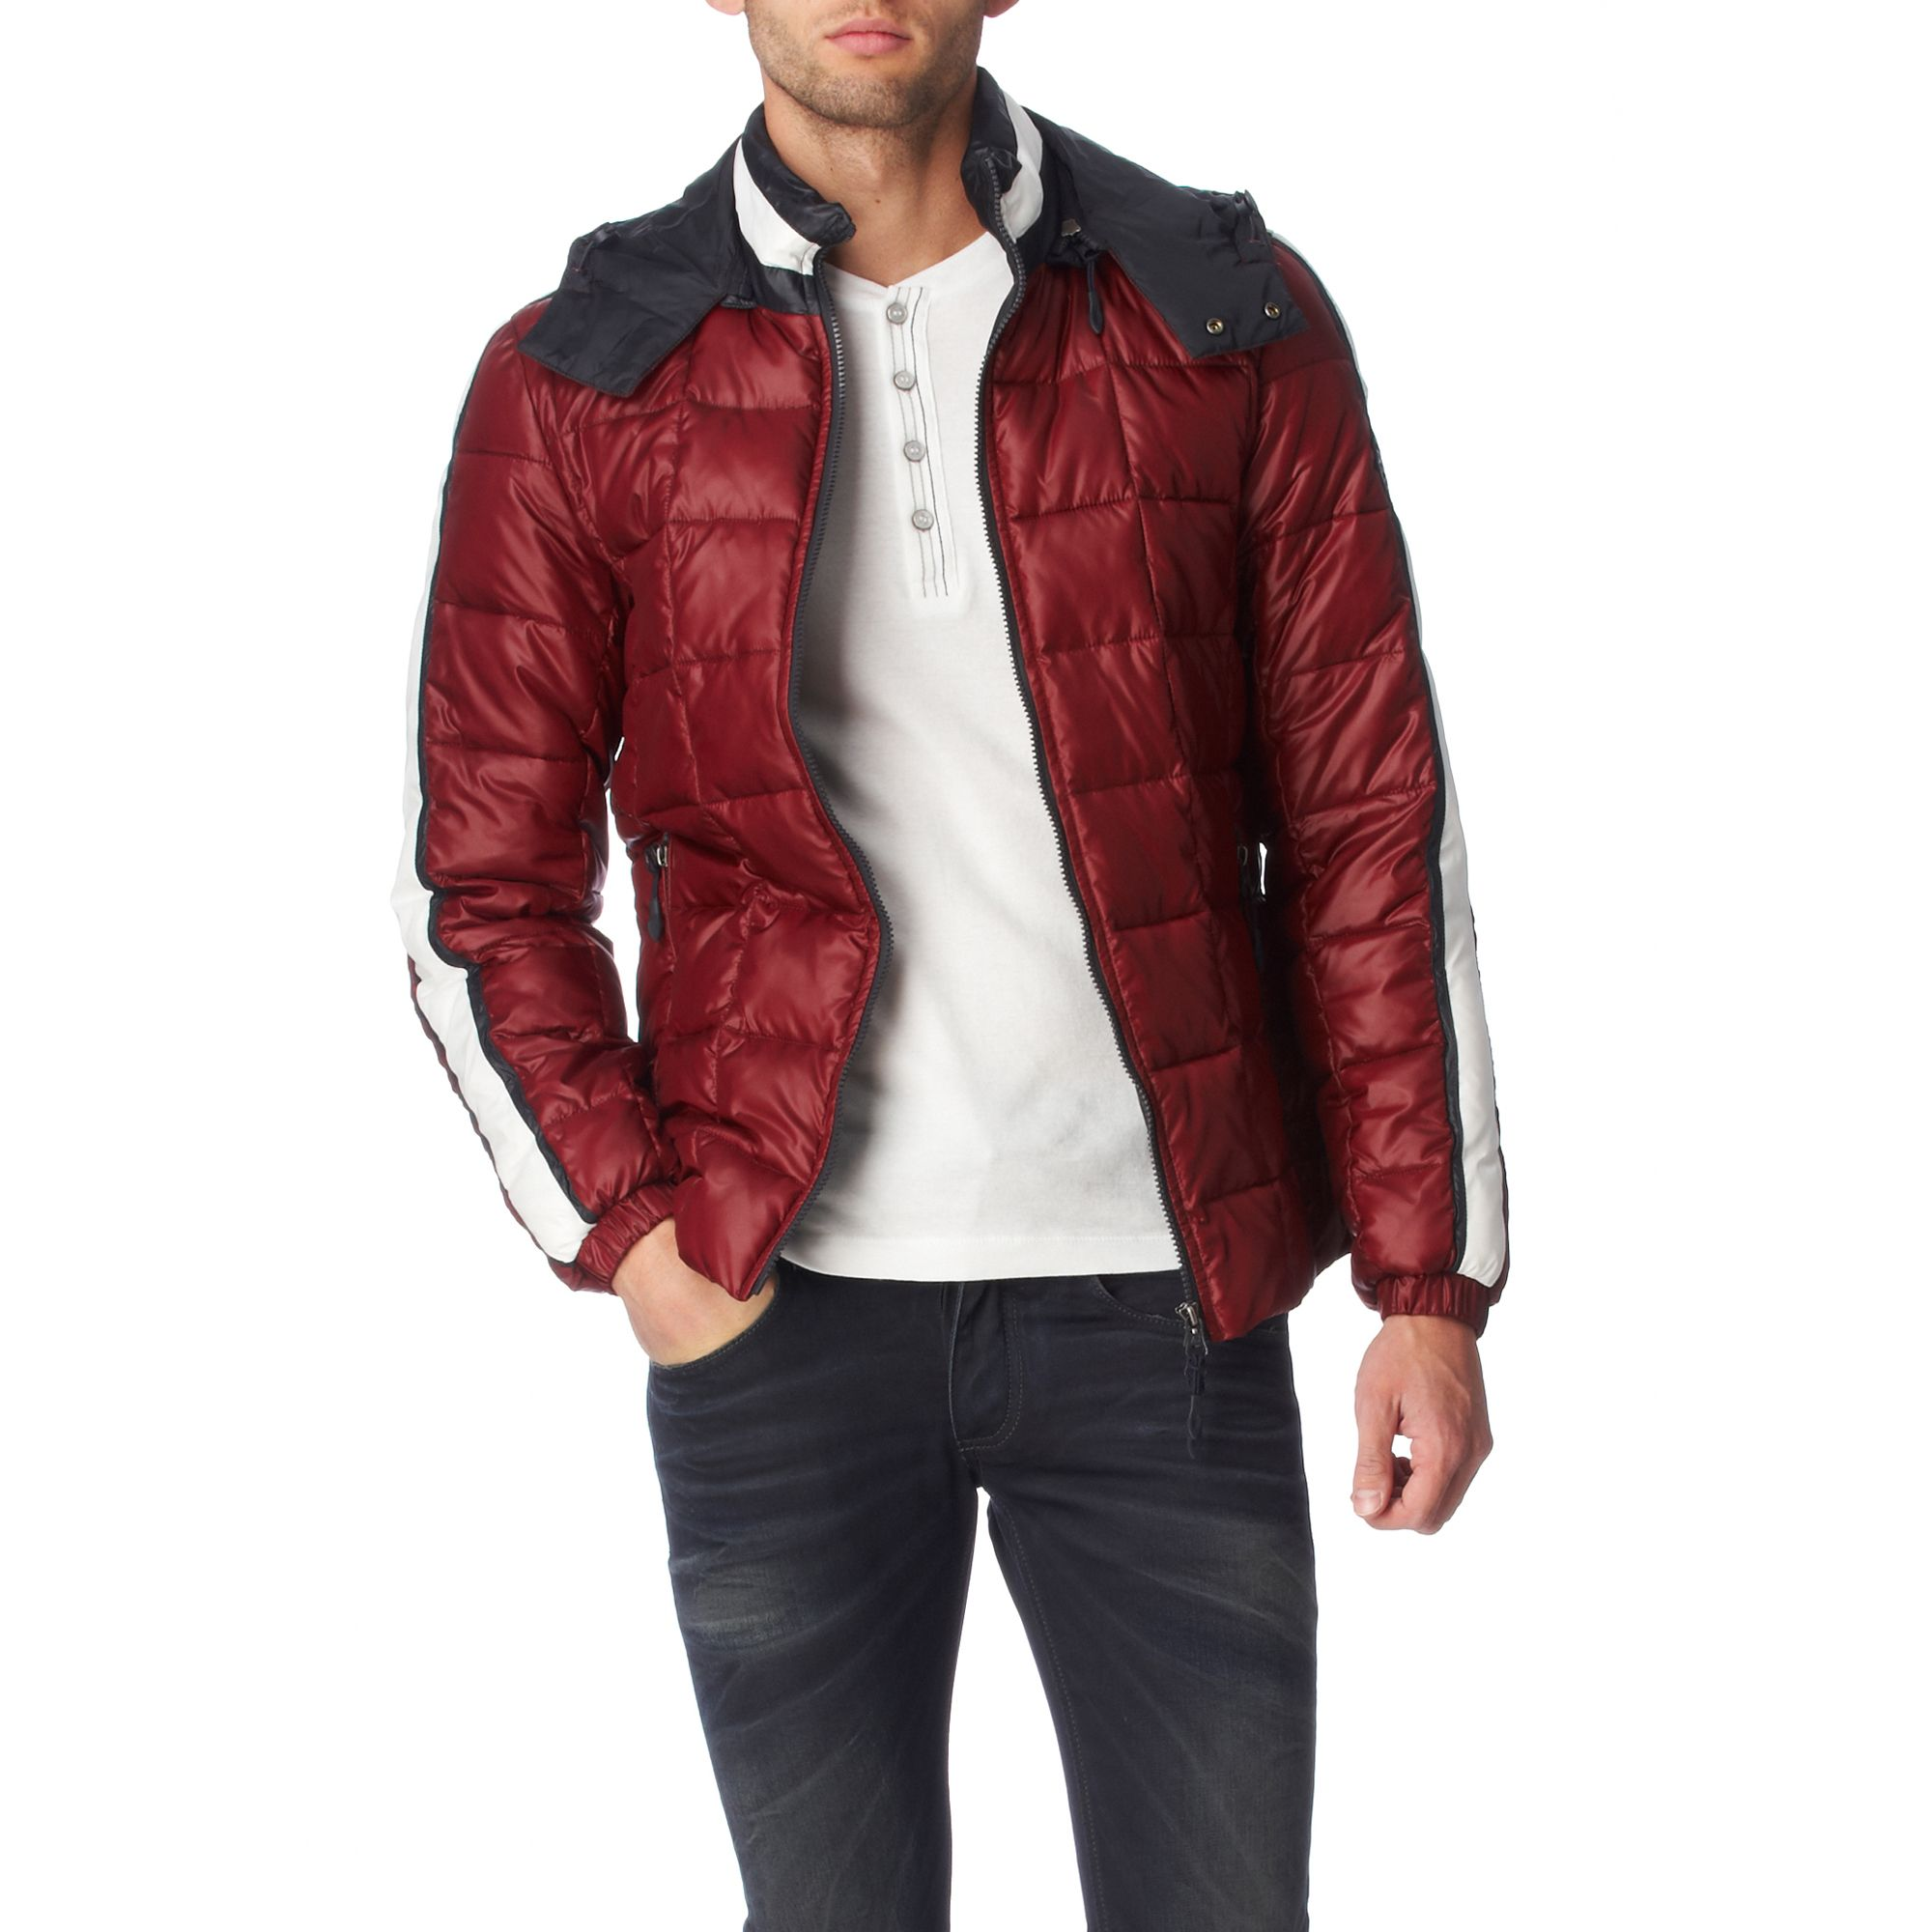 Armani jeans Quilted Padded Jacket in Purple for Men   Lyst : armani jeans quilted jacket - Adamdwight.com